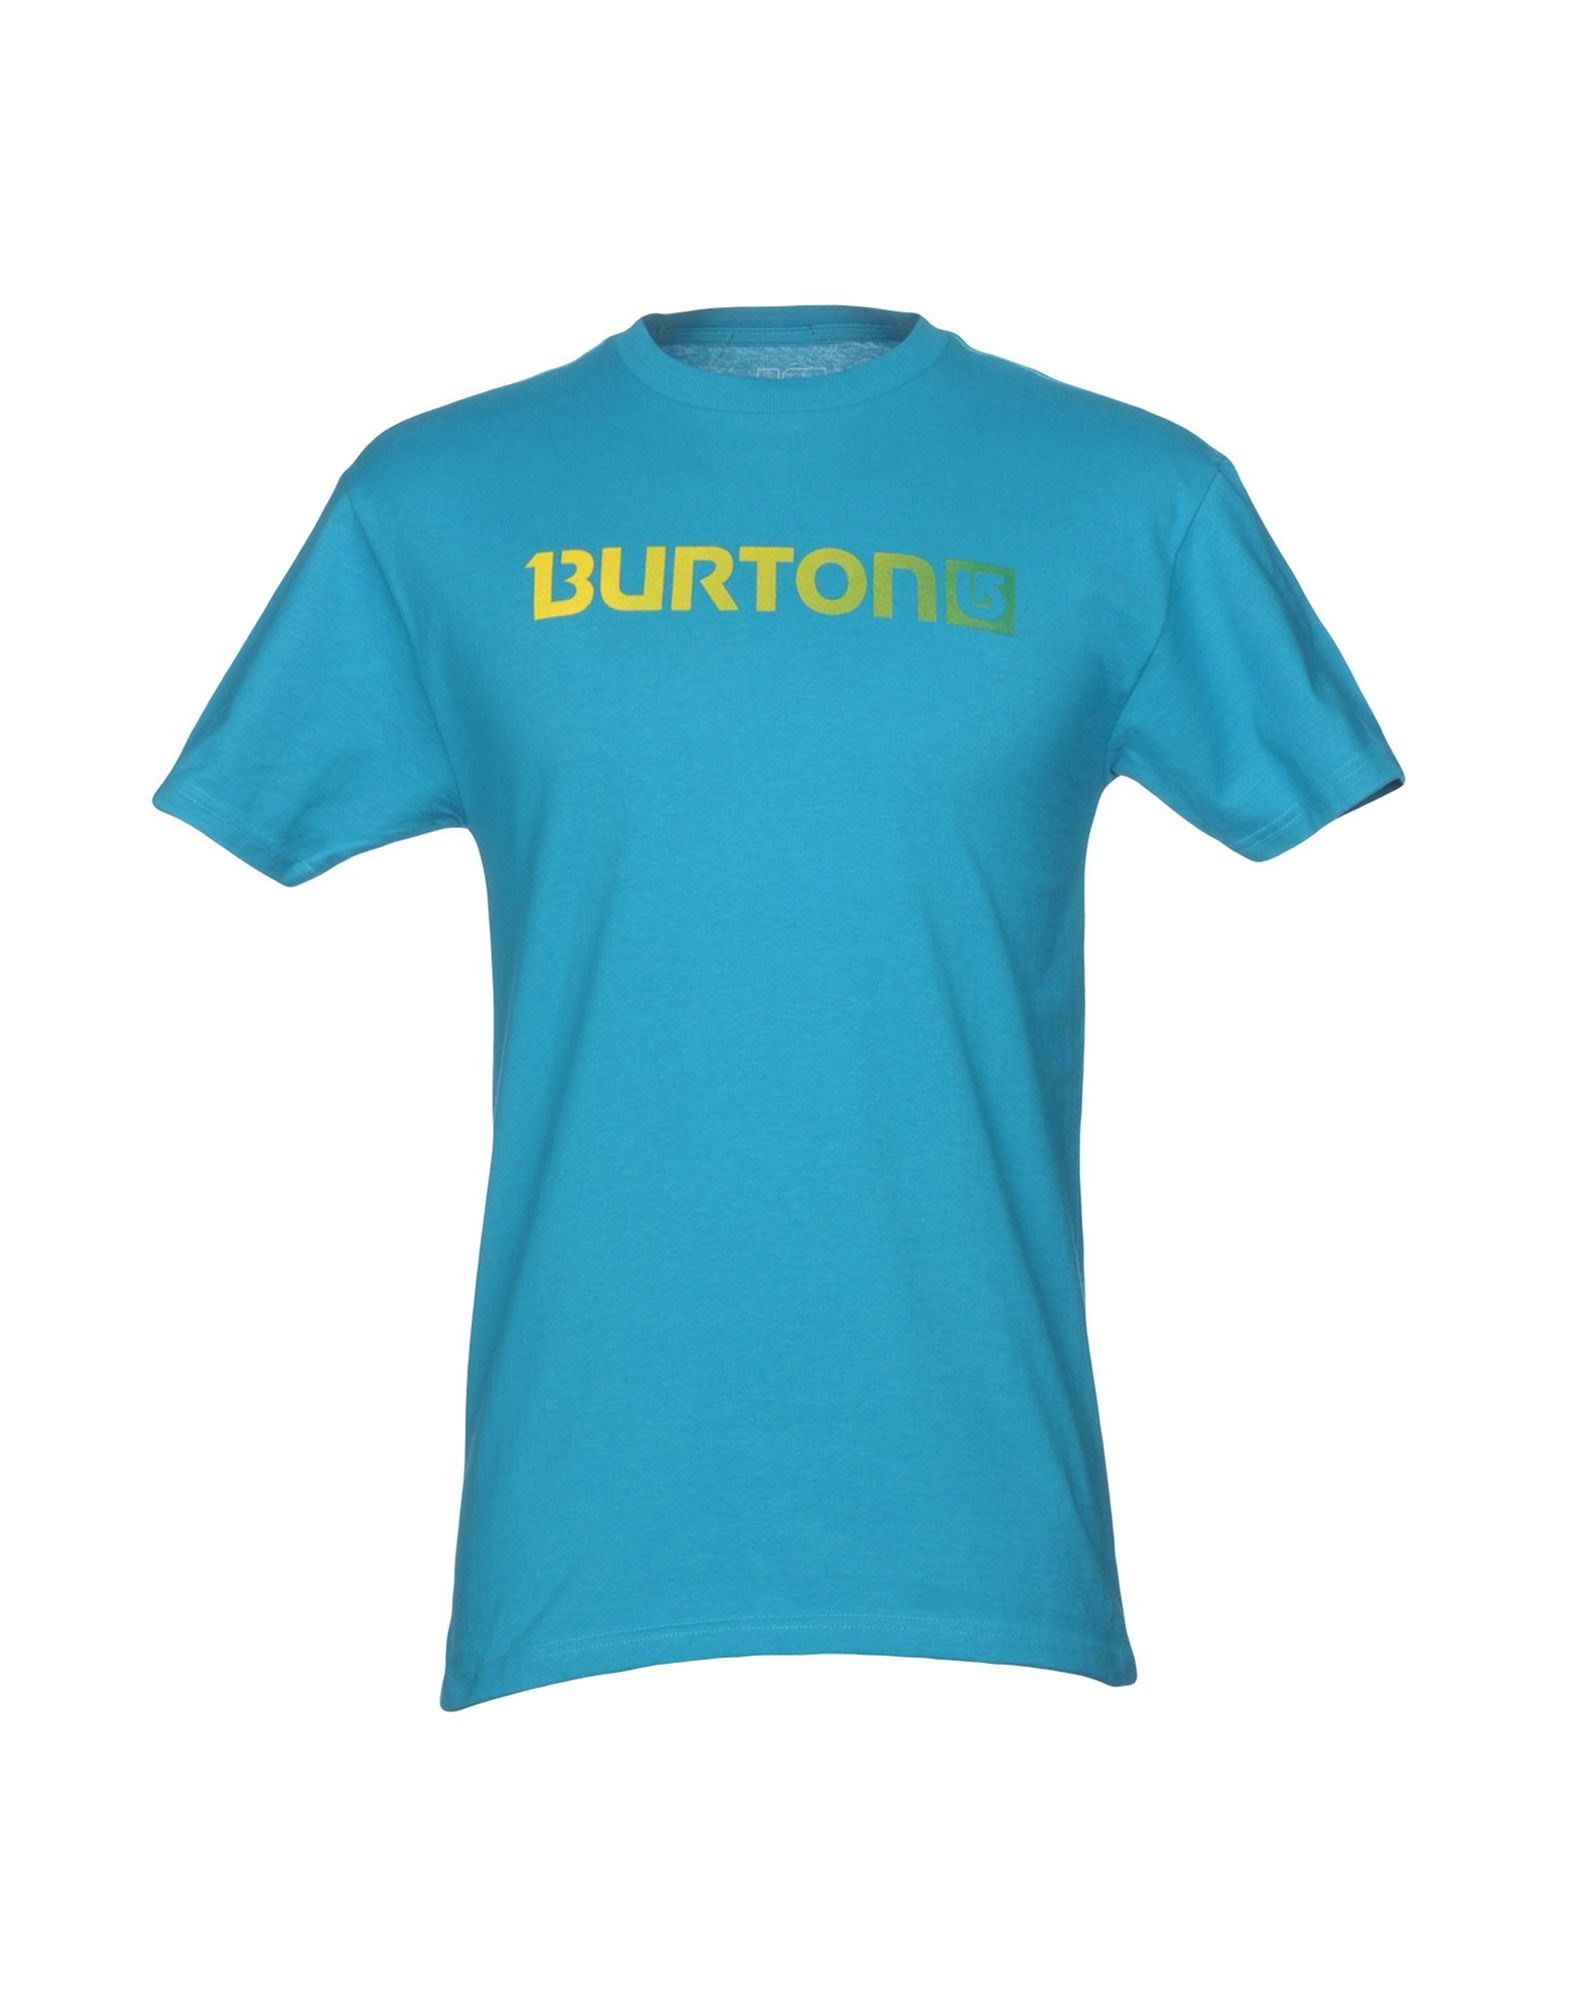 BURTON Футболка пиджак burton menswear london burton menswear london bu014emium49